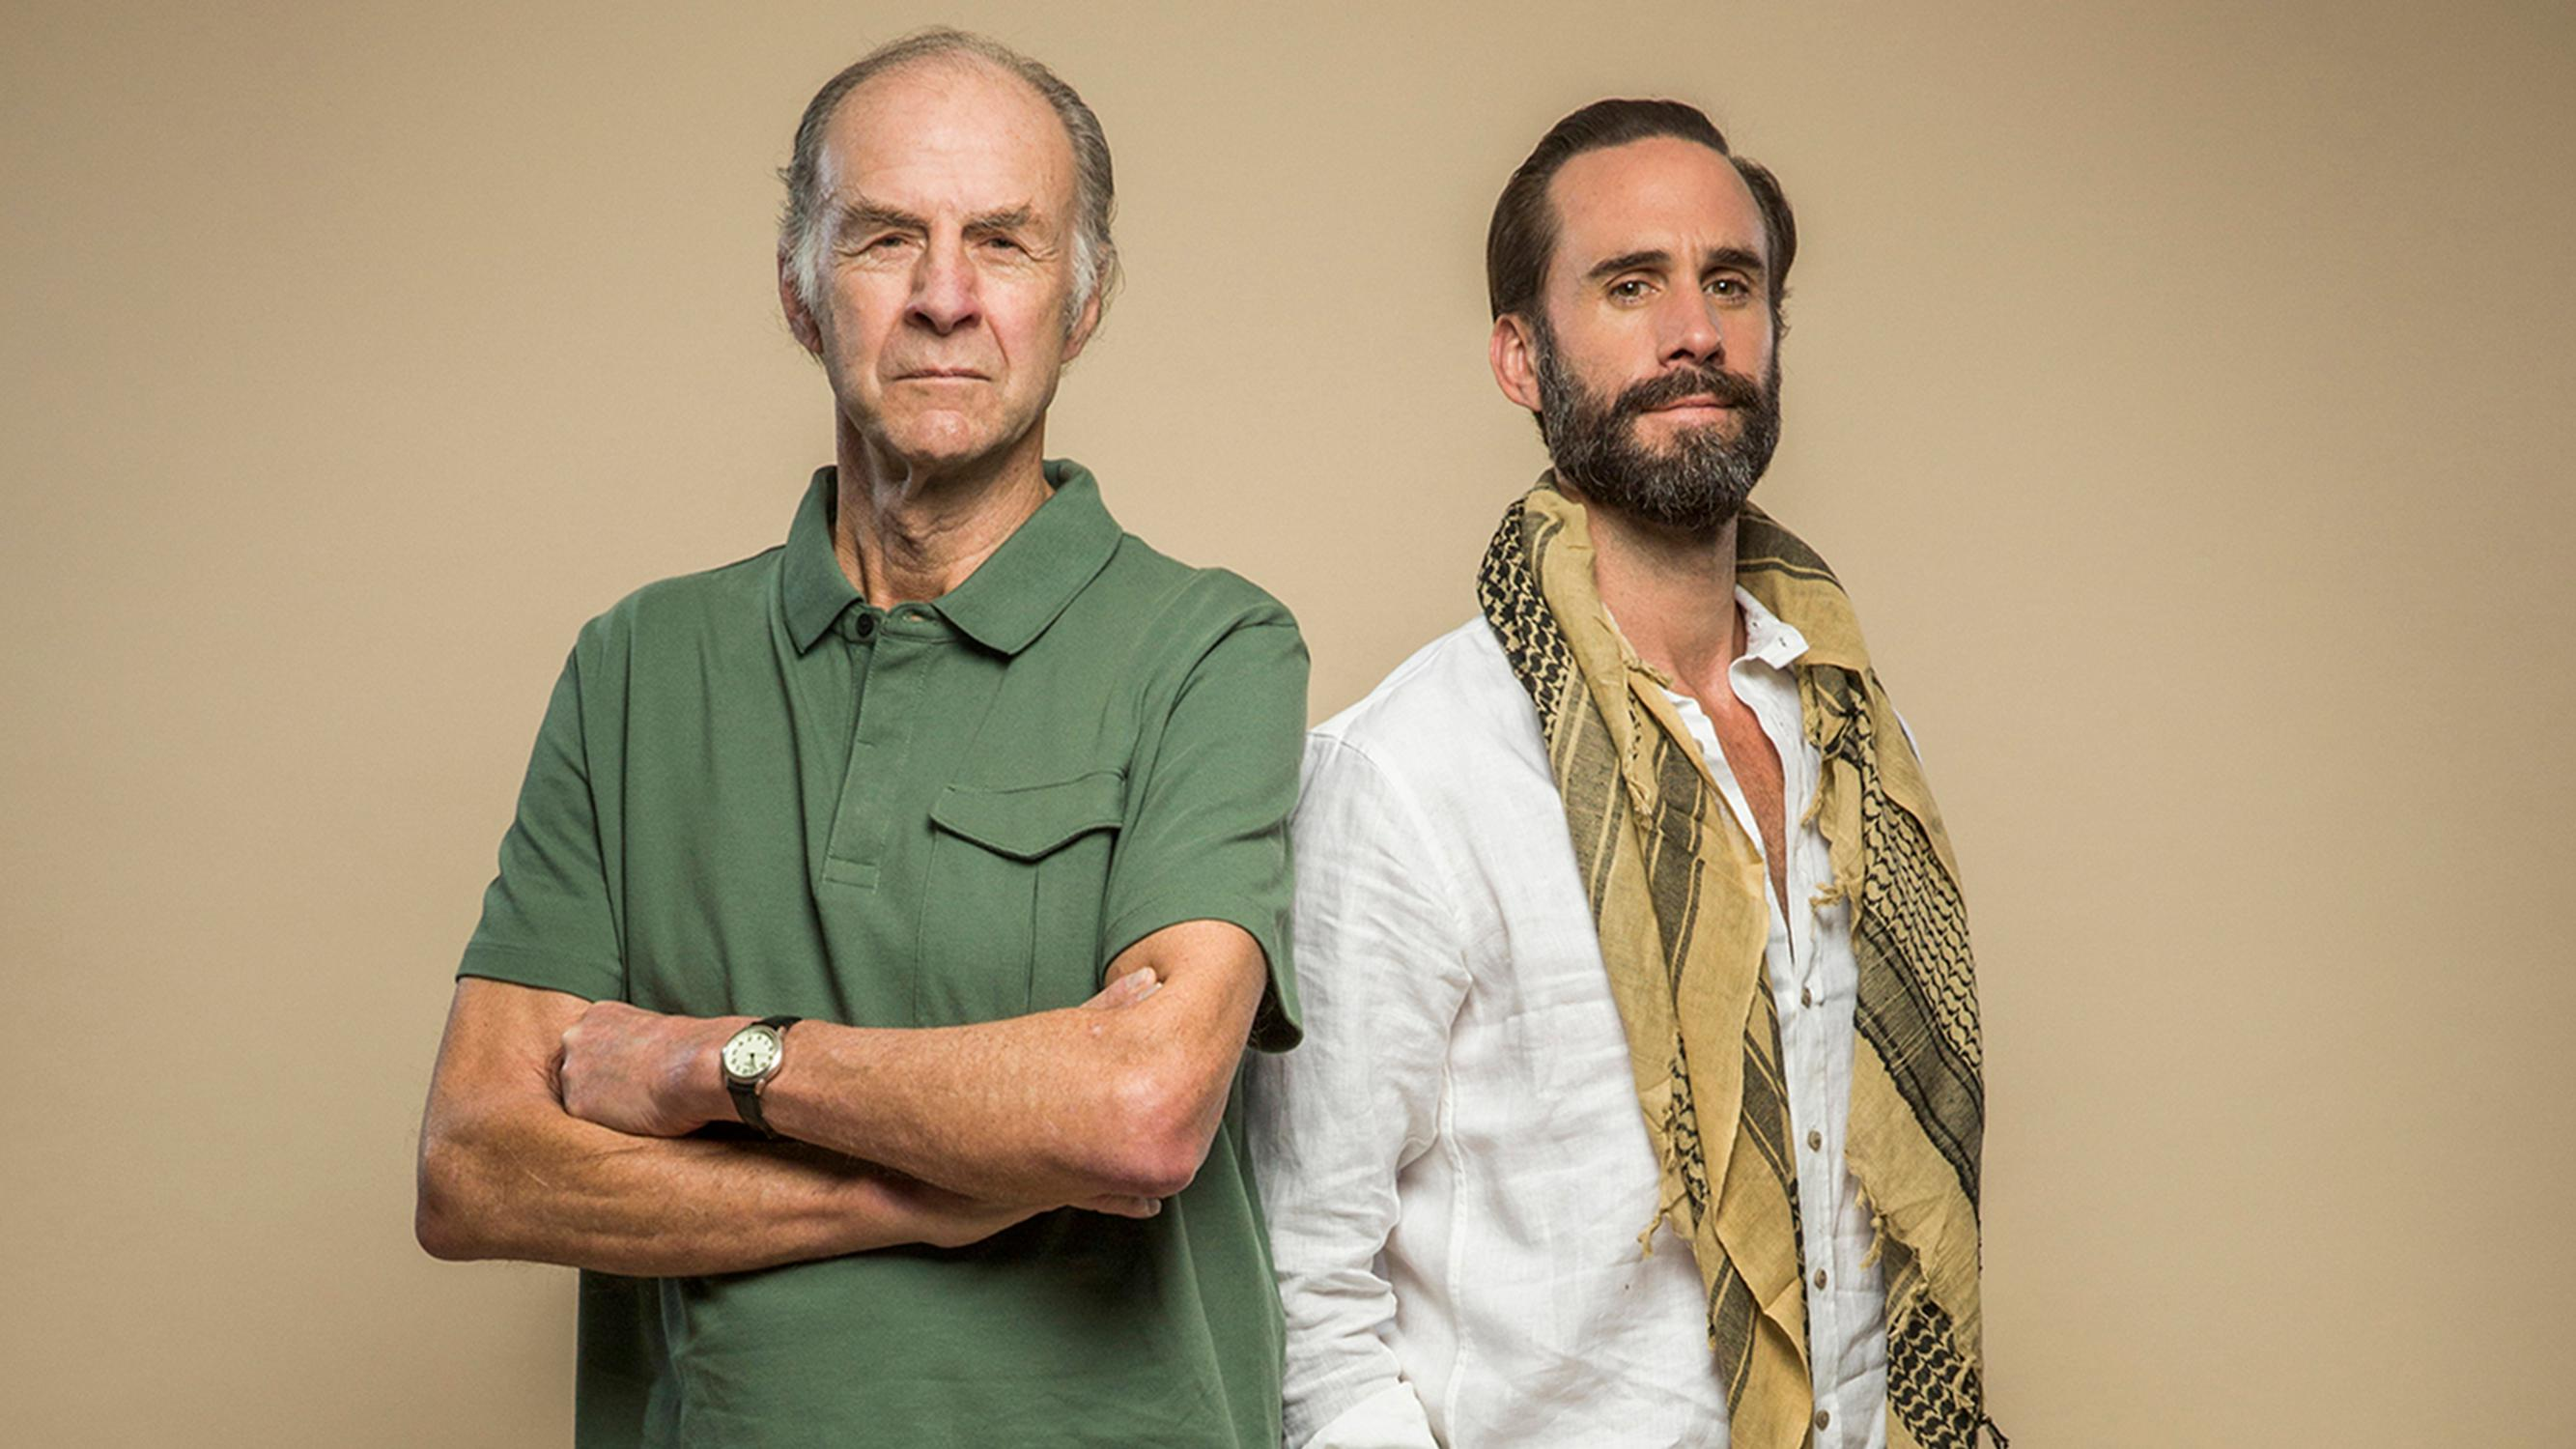 Joseph Und Joseph Sir Ranulph Fiennes And Joseph Fiennes Team Up For An Adventure In